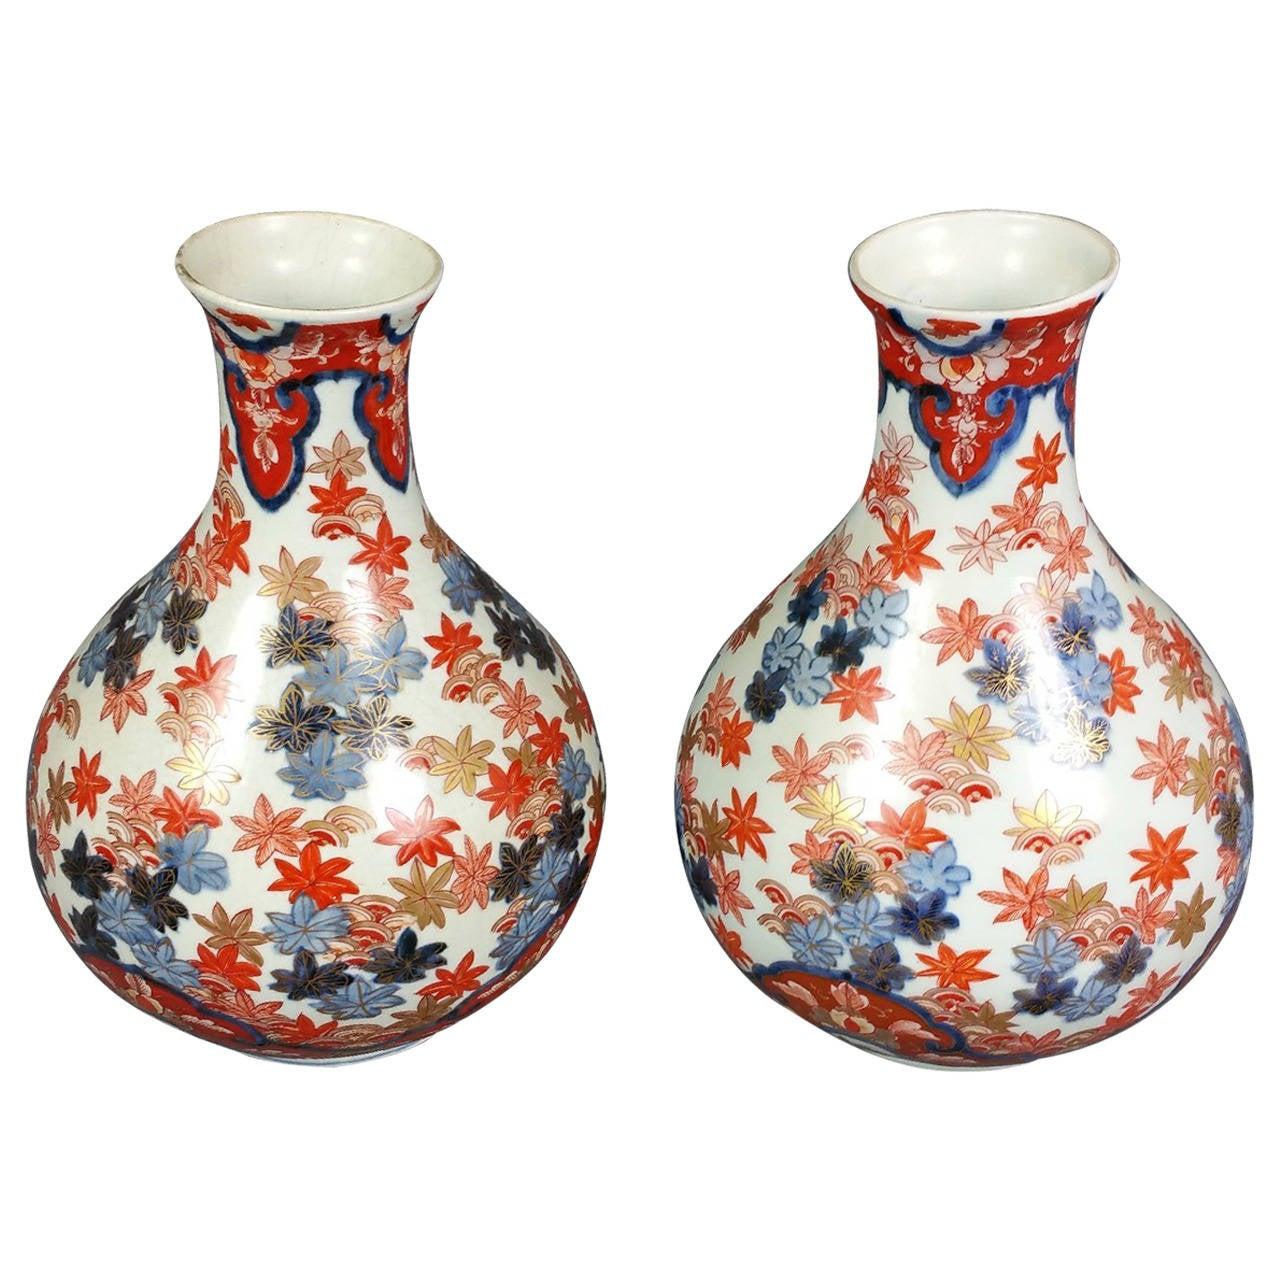 Pair of 19th century japanese imari pottery vases for sale at 1stdibs pair of 19th century japanese imari pottery vases for sale reviewsmspy